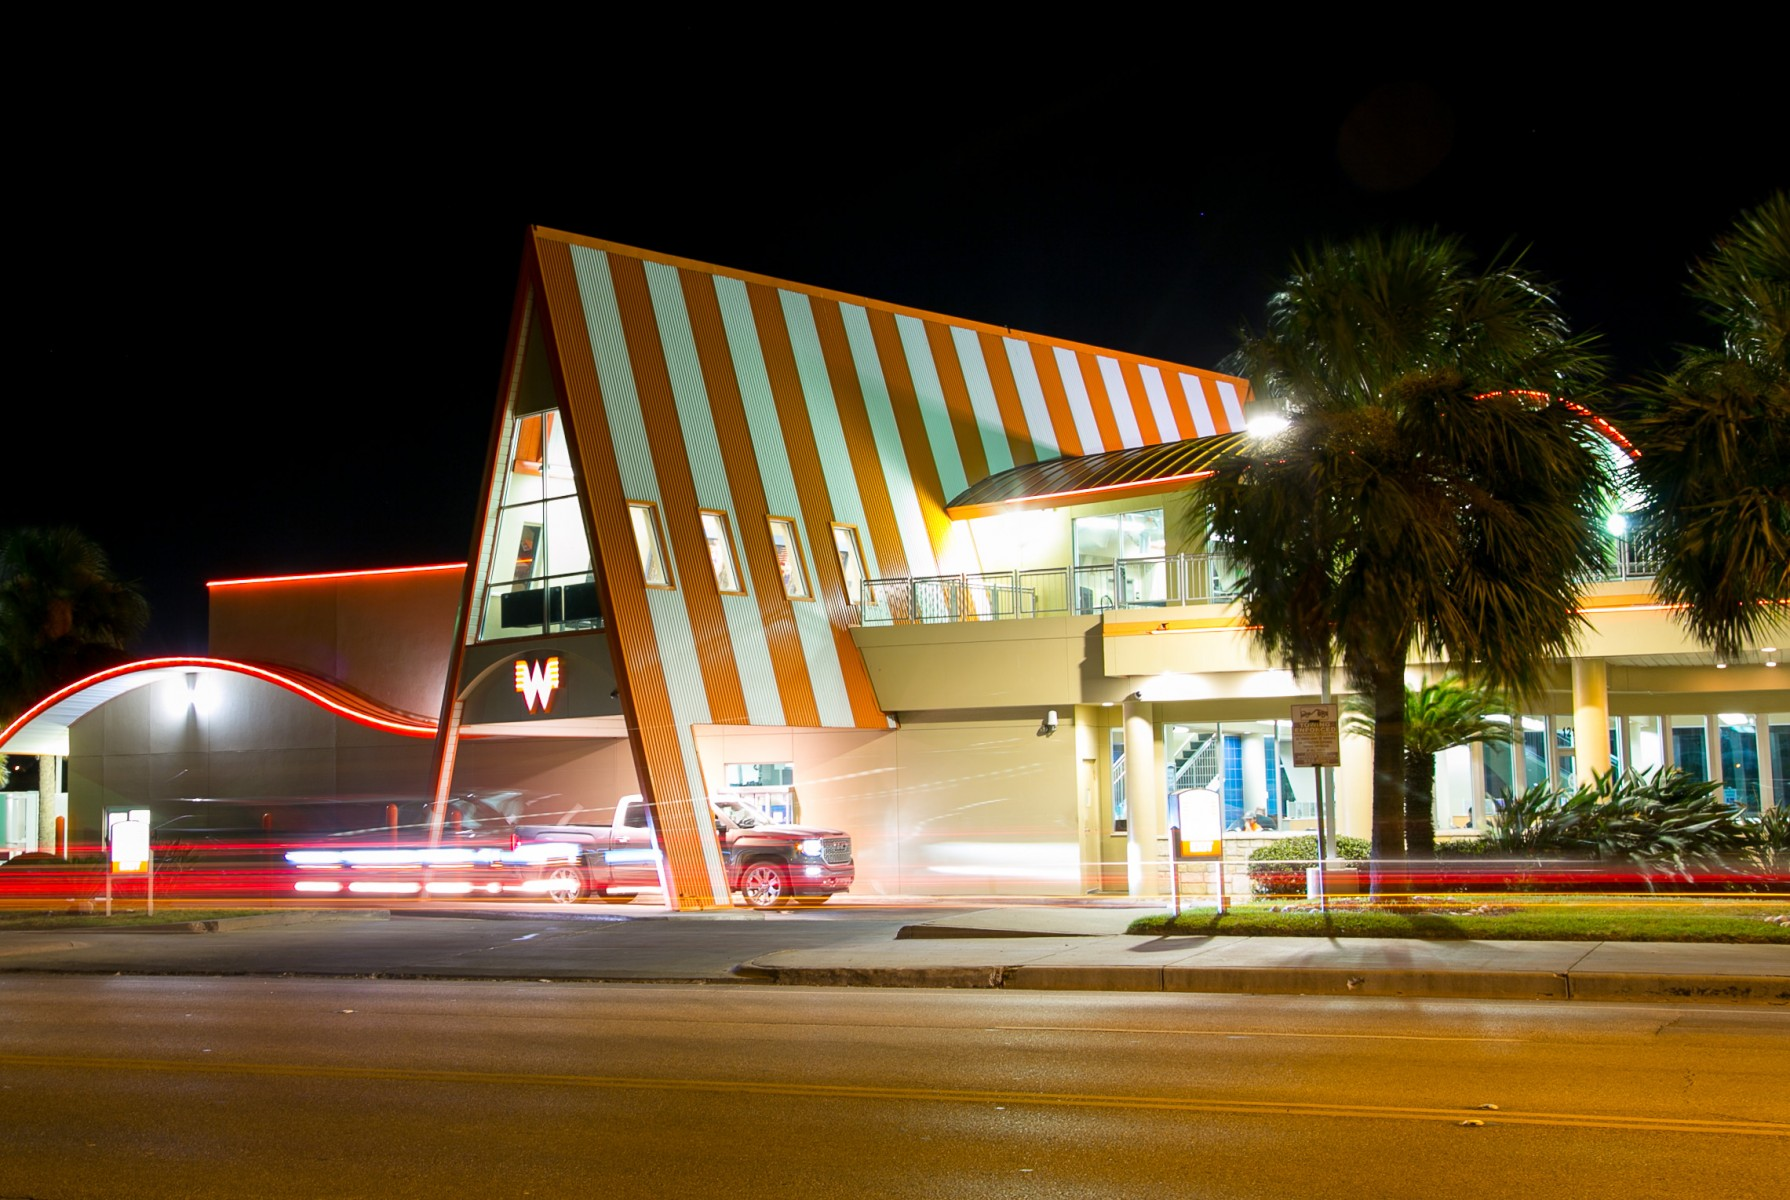 Classic Whataburger Building